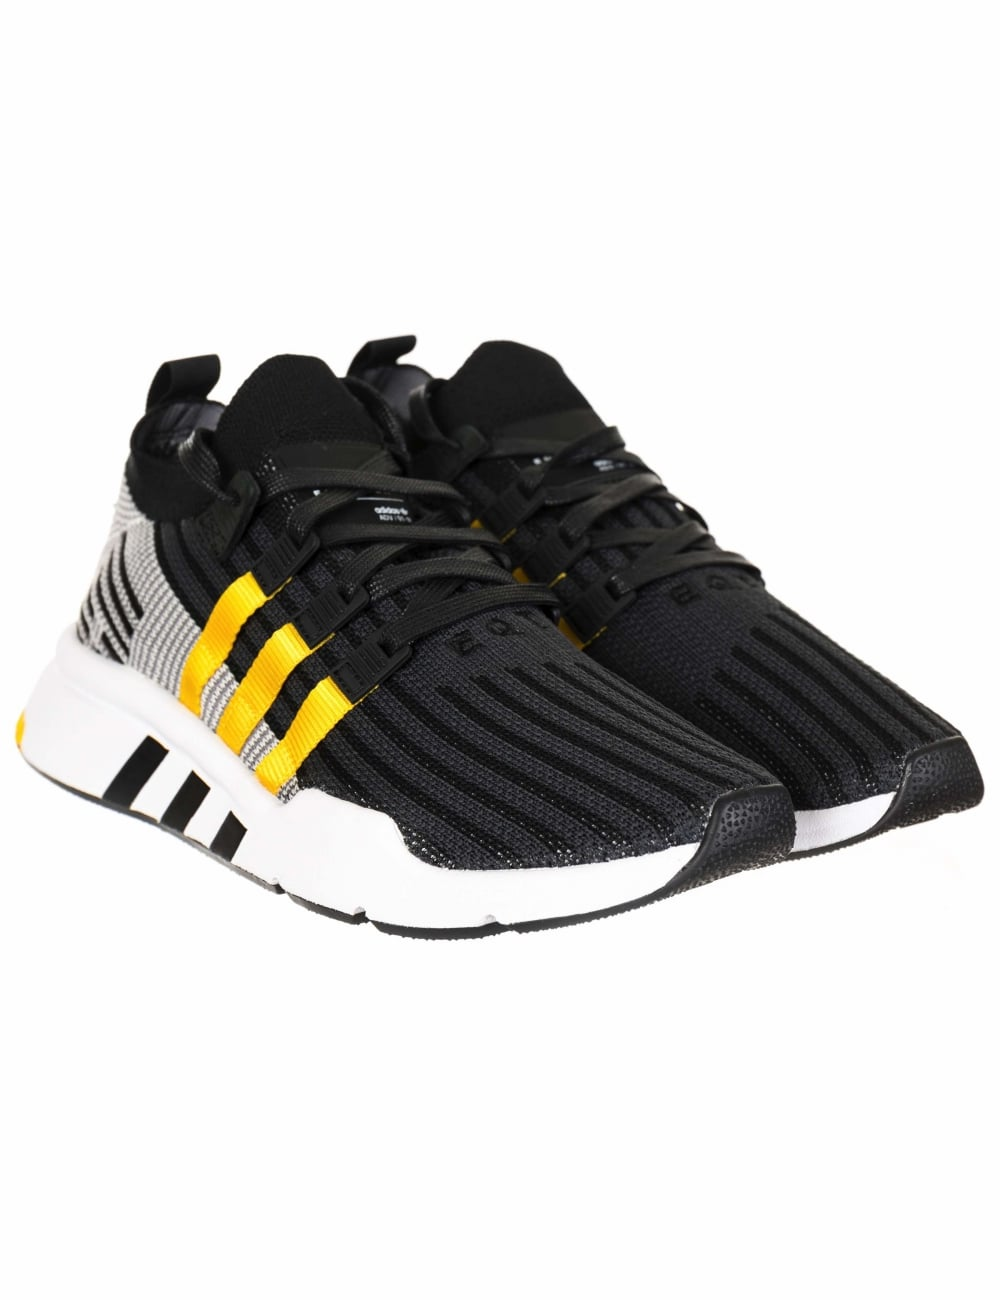 07d751cafd0 Adidas Originals EQT Support Mid ADV Primeknit Trainers - Core Black ...